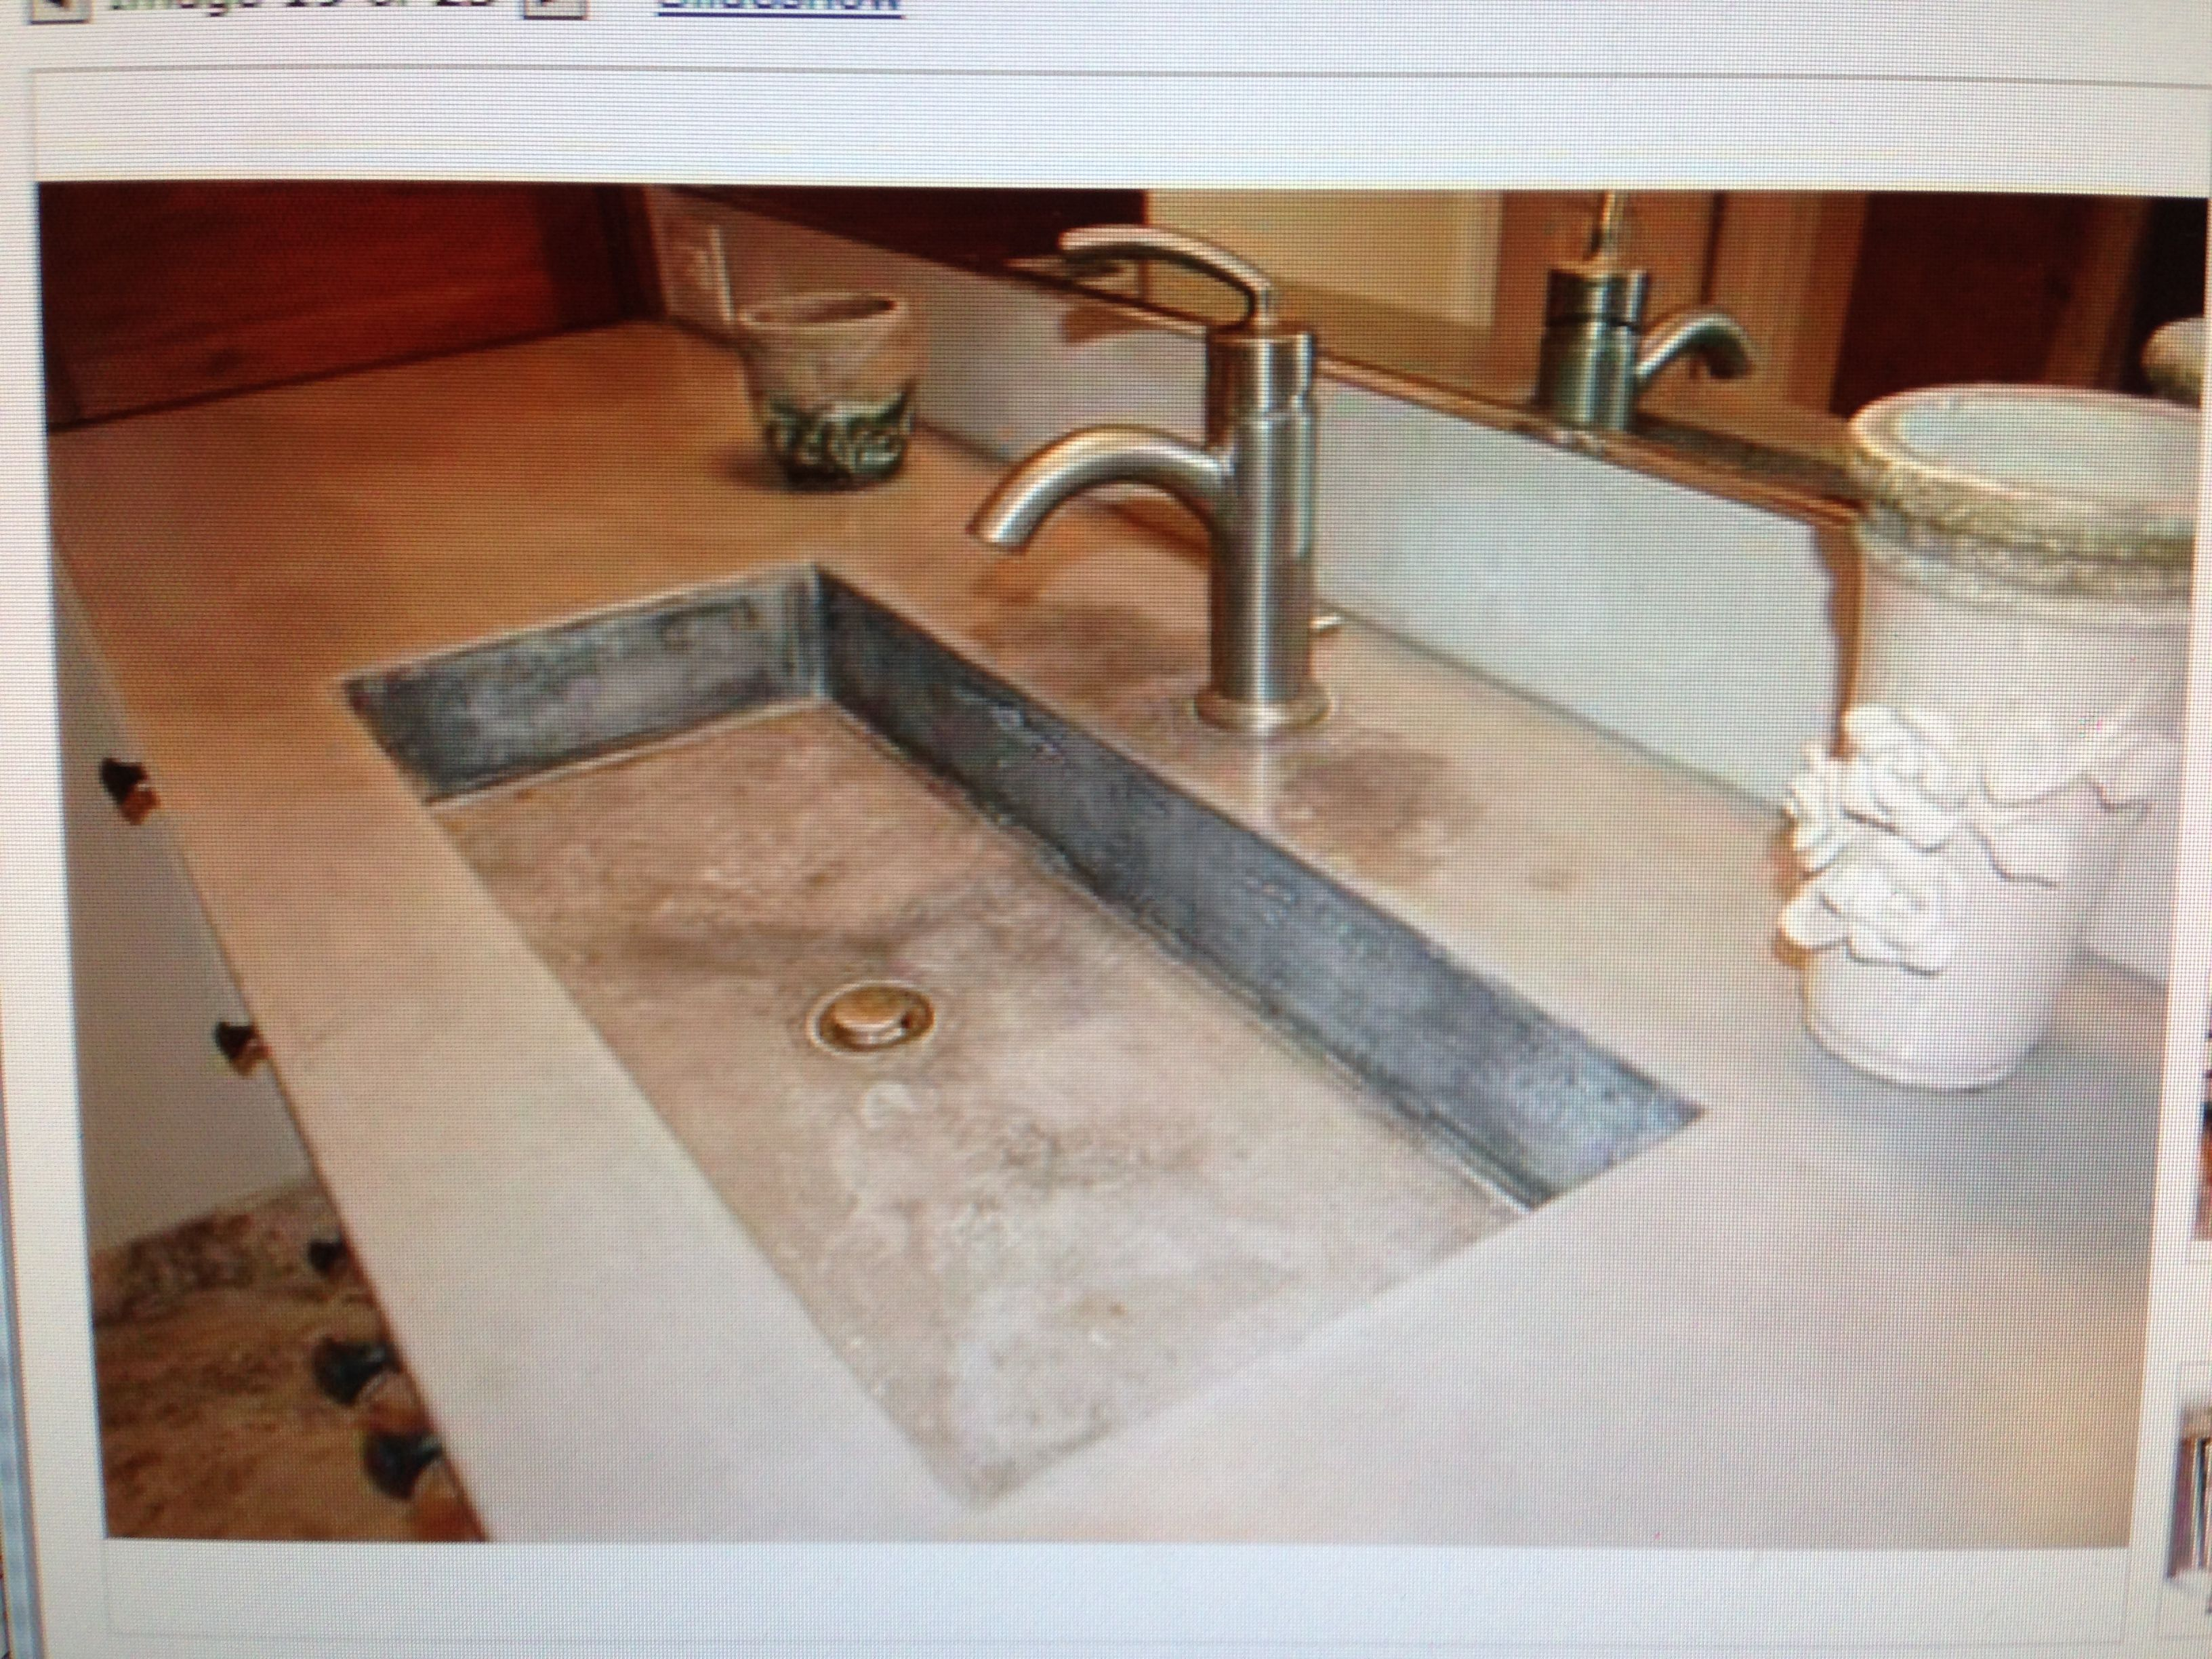 High Quality Concrete Sink. Love The Color And Texture It Has. And The Earthy Natural  Lookin